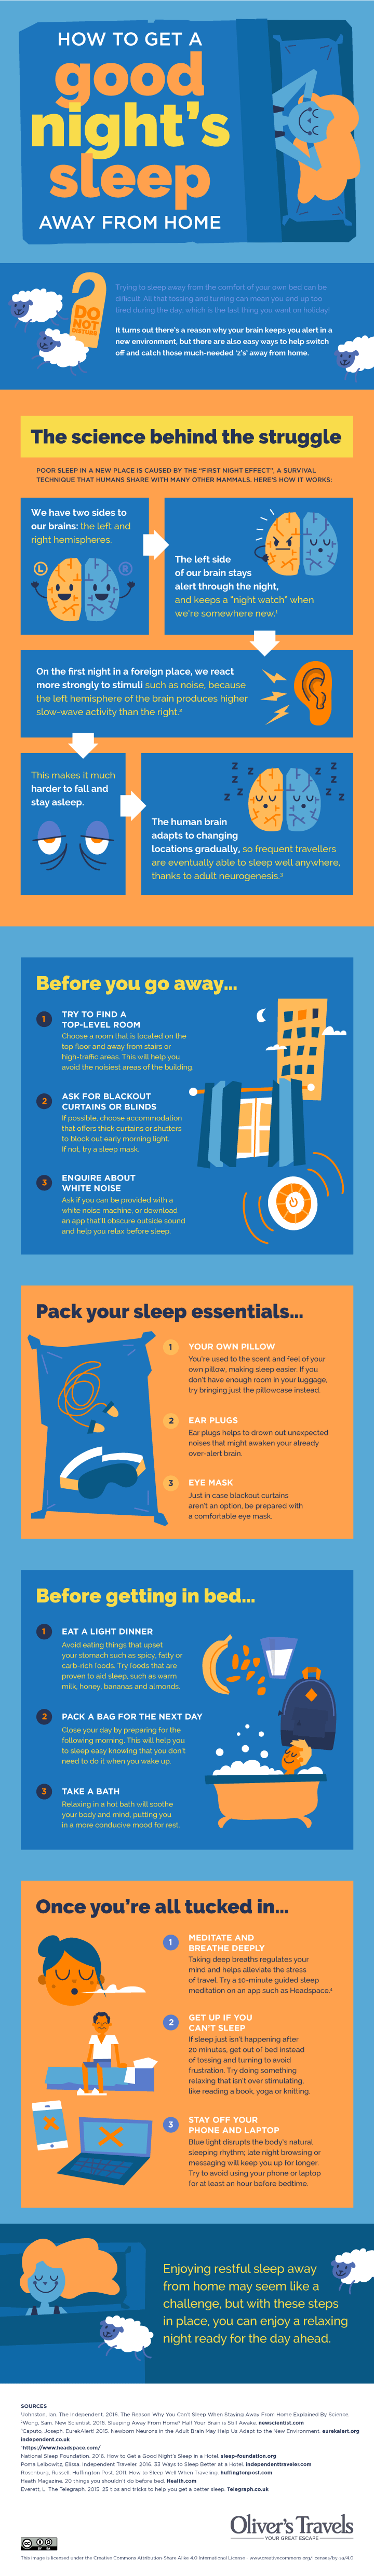 How to get a good night's sleep away from home - Oliver's Travels